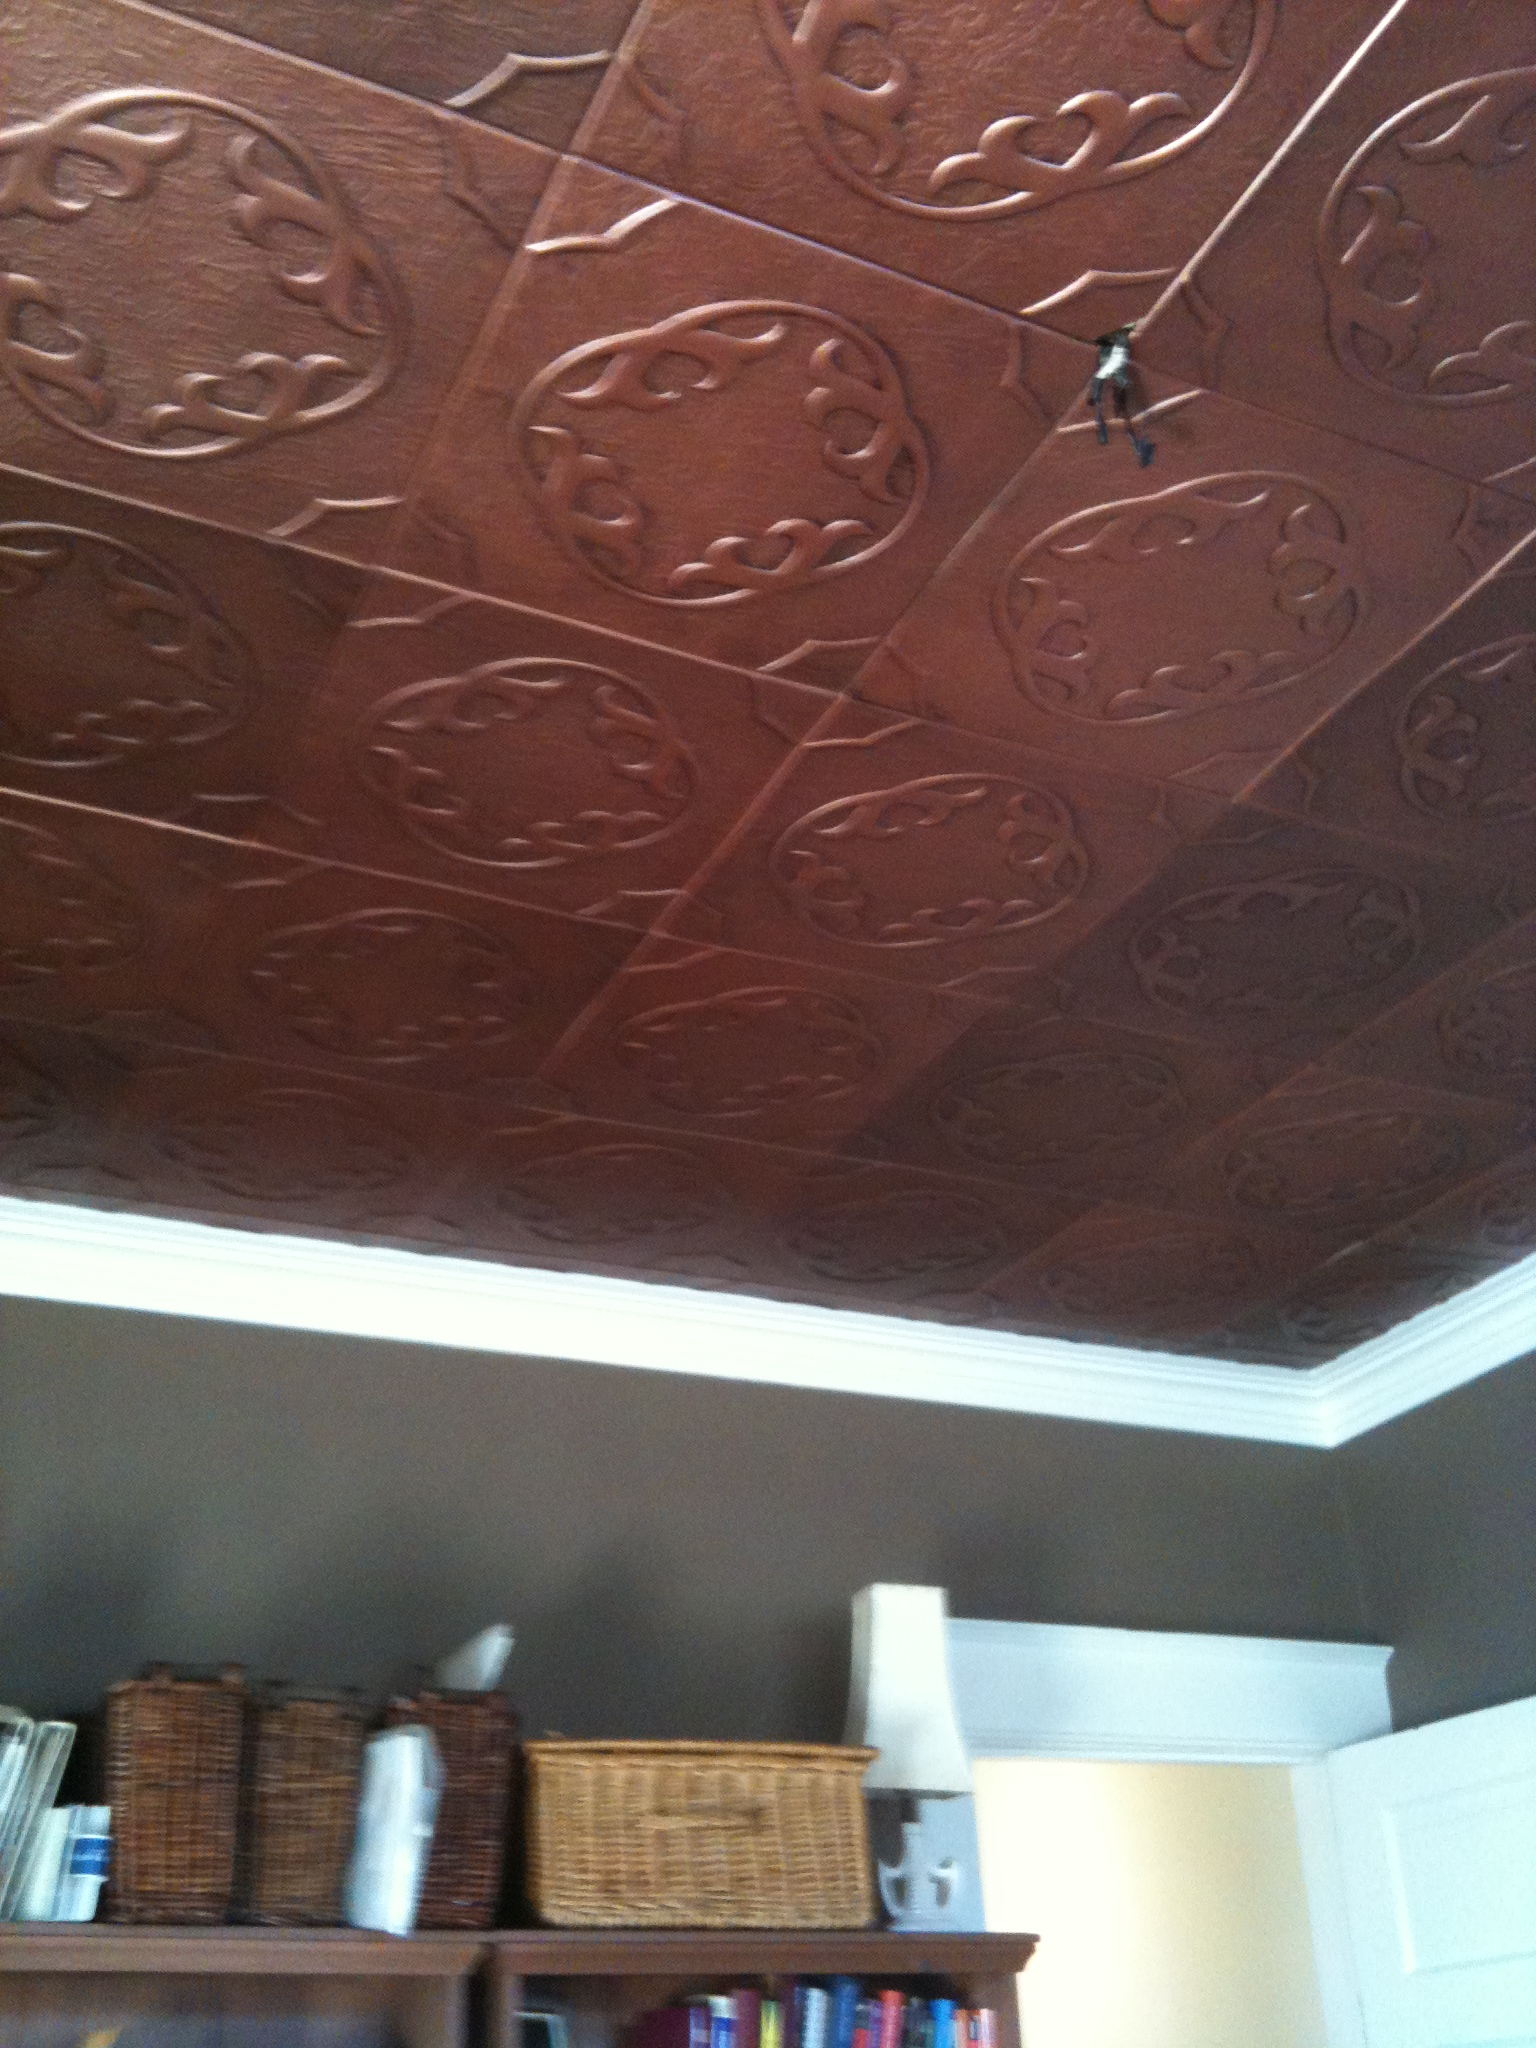 My clients projects decorative ceiling tiles incs blog page 2 old wolrd ceiling tiles arizona dailygadgetfo Choice Image